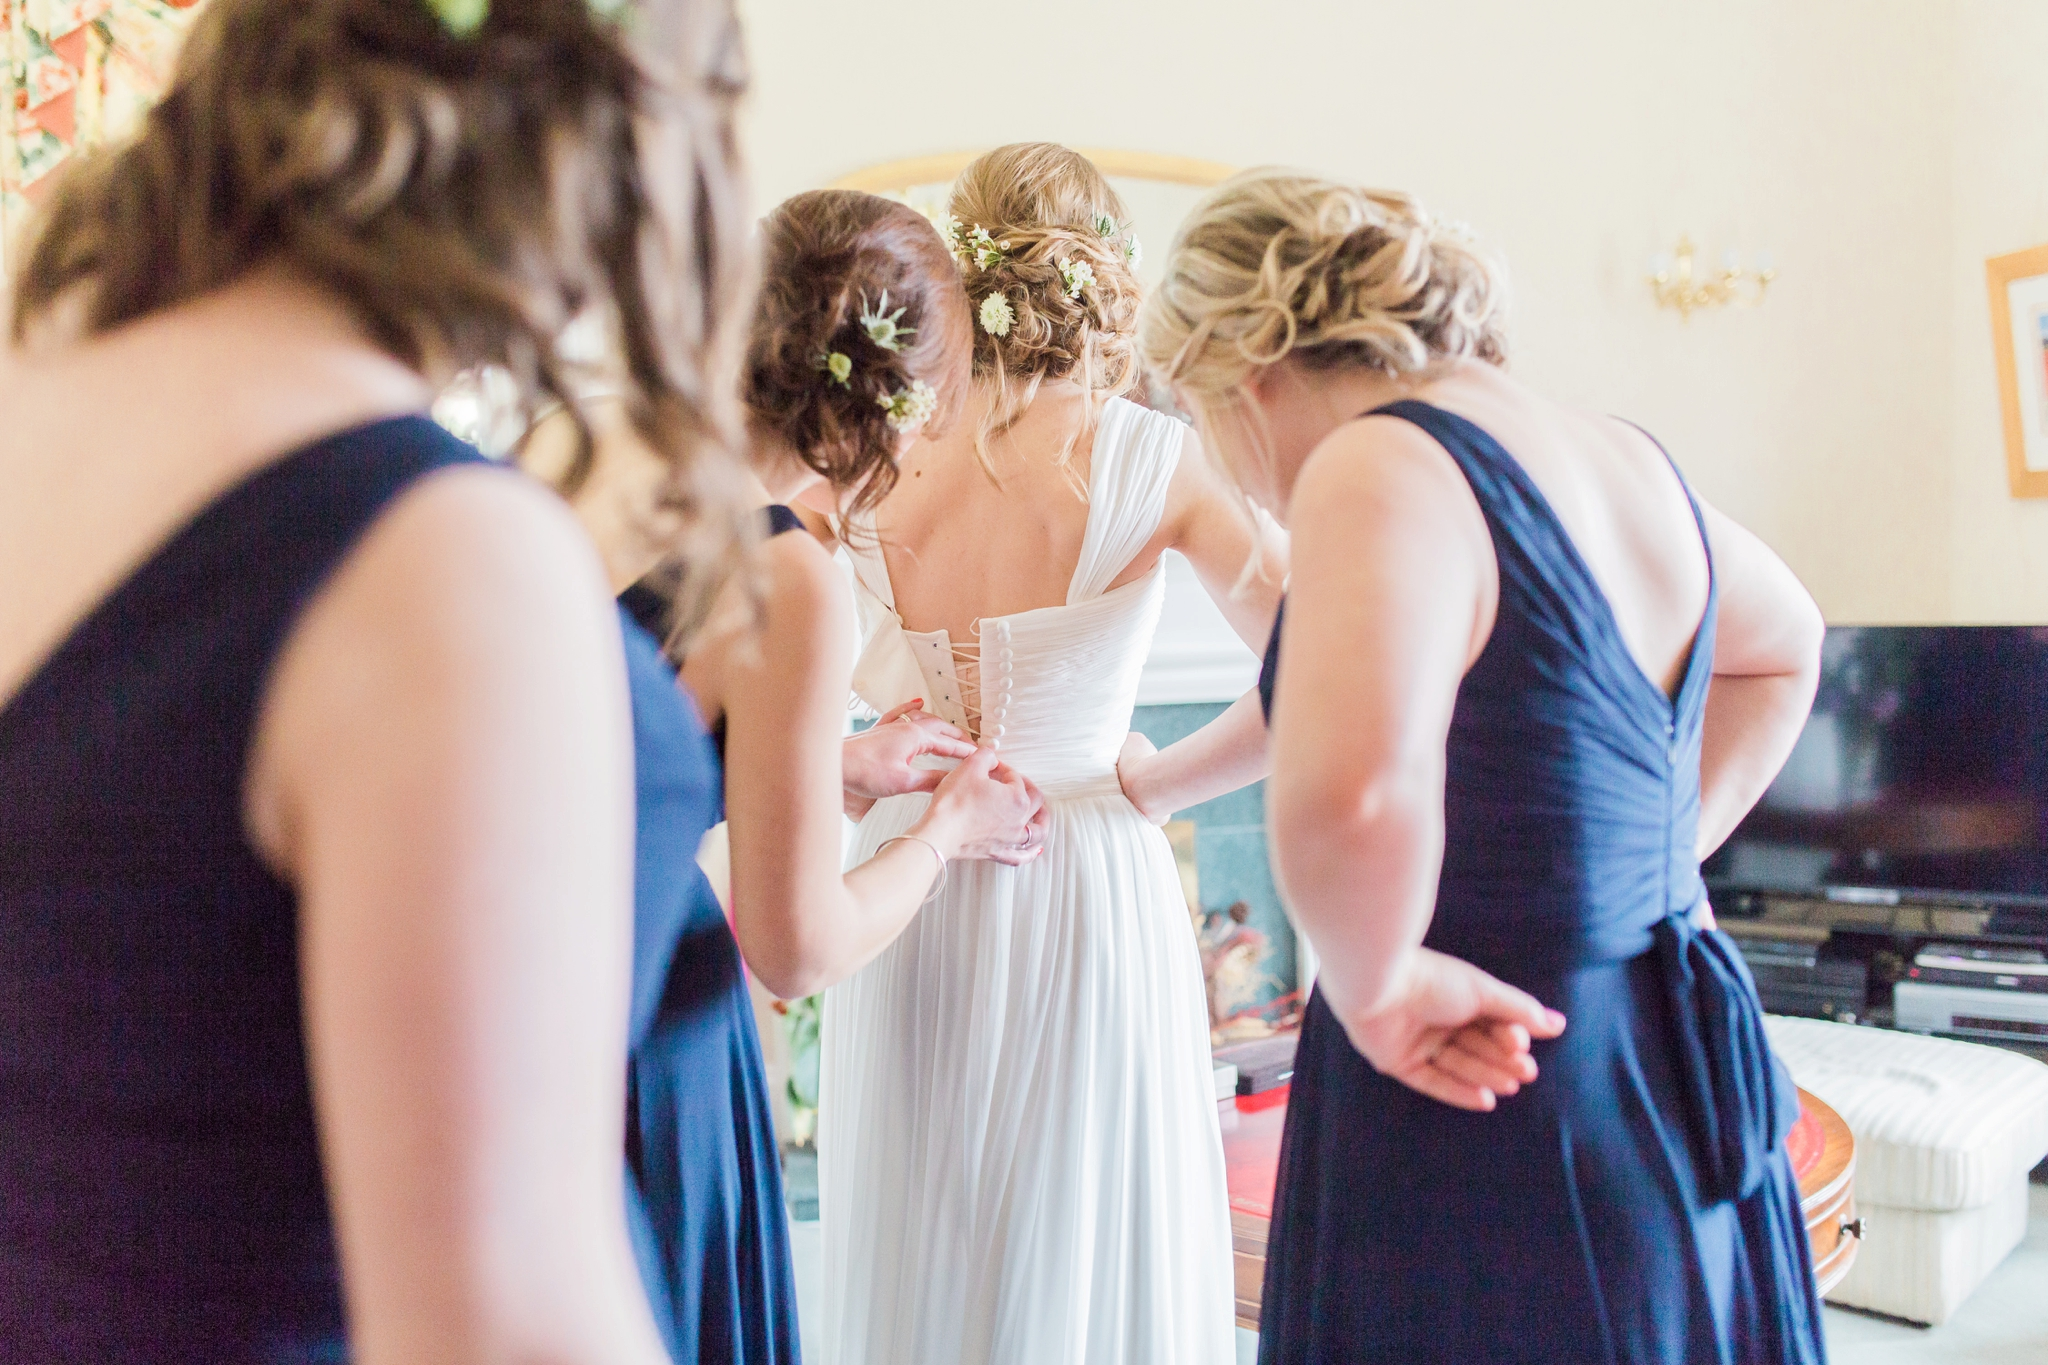 Suzanne_li_photography_kirknewton_wedding_0018.jpg